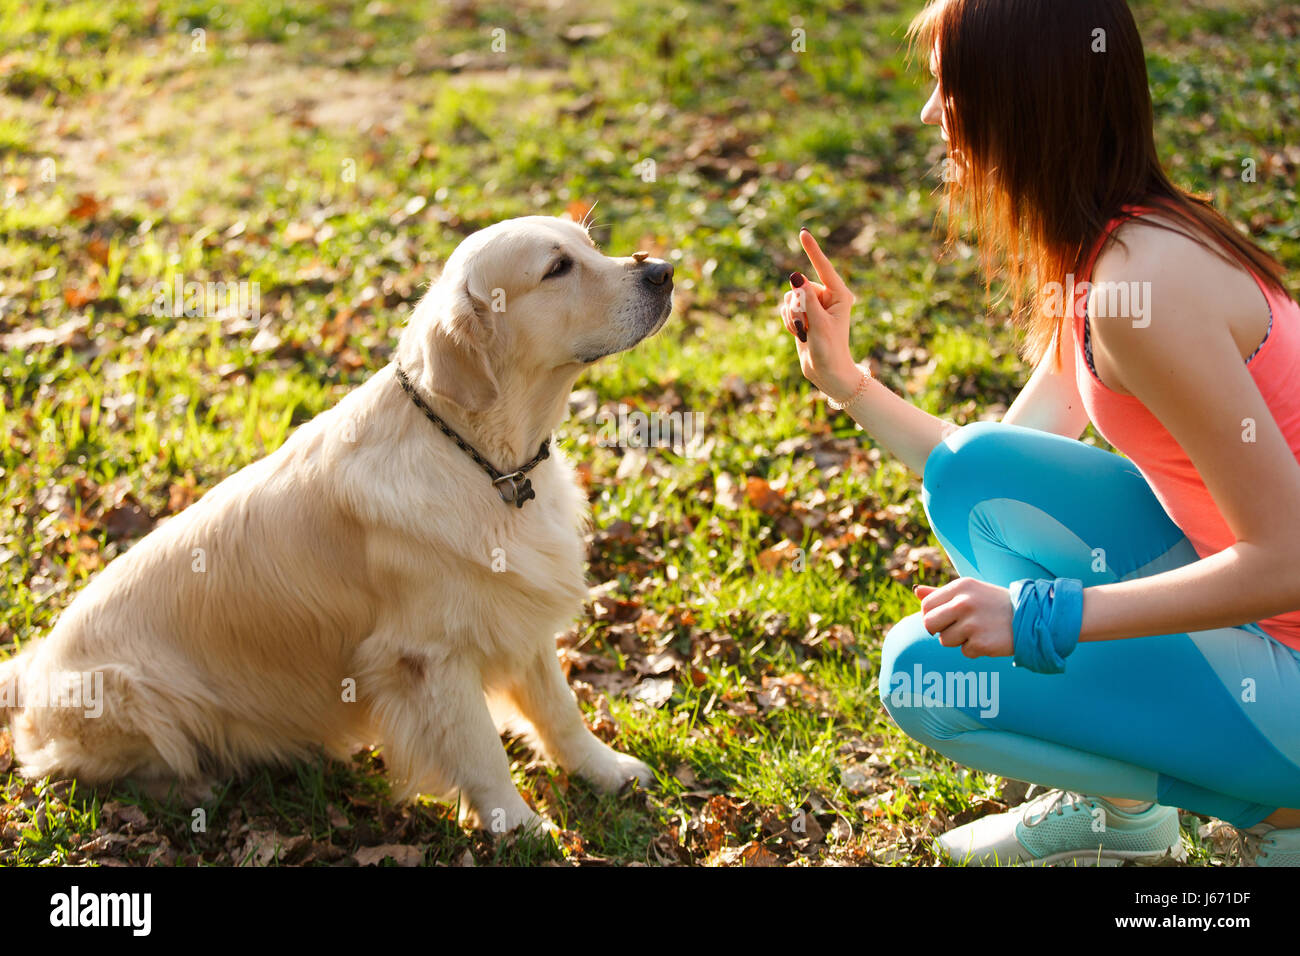 Woman and dog in park - Stock Image